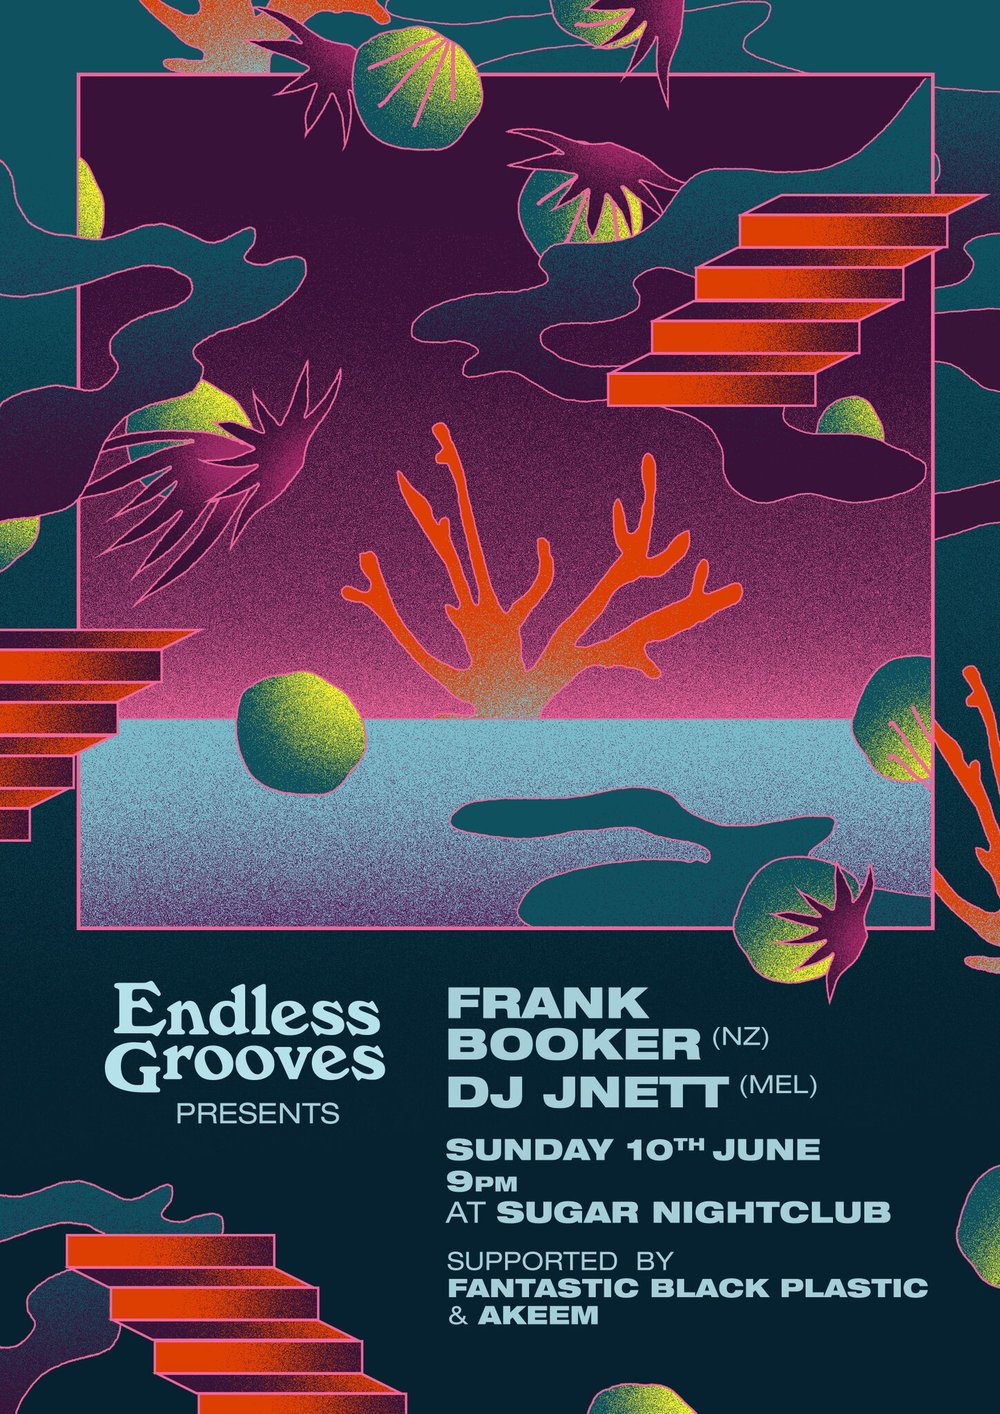 Jun10_Poster_EndlessGrooves_preview.jpeg